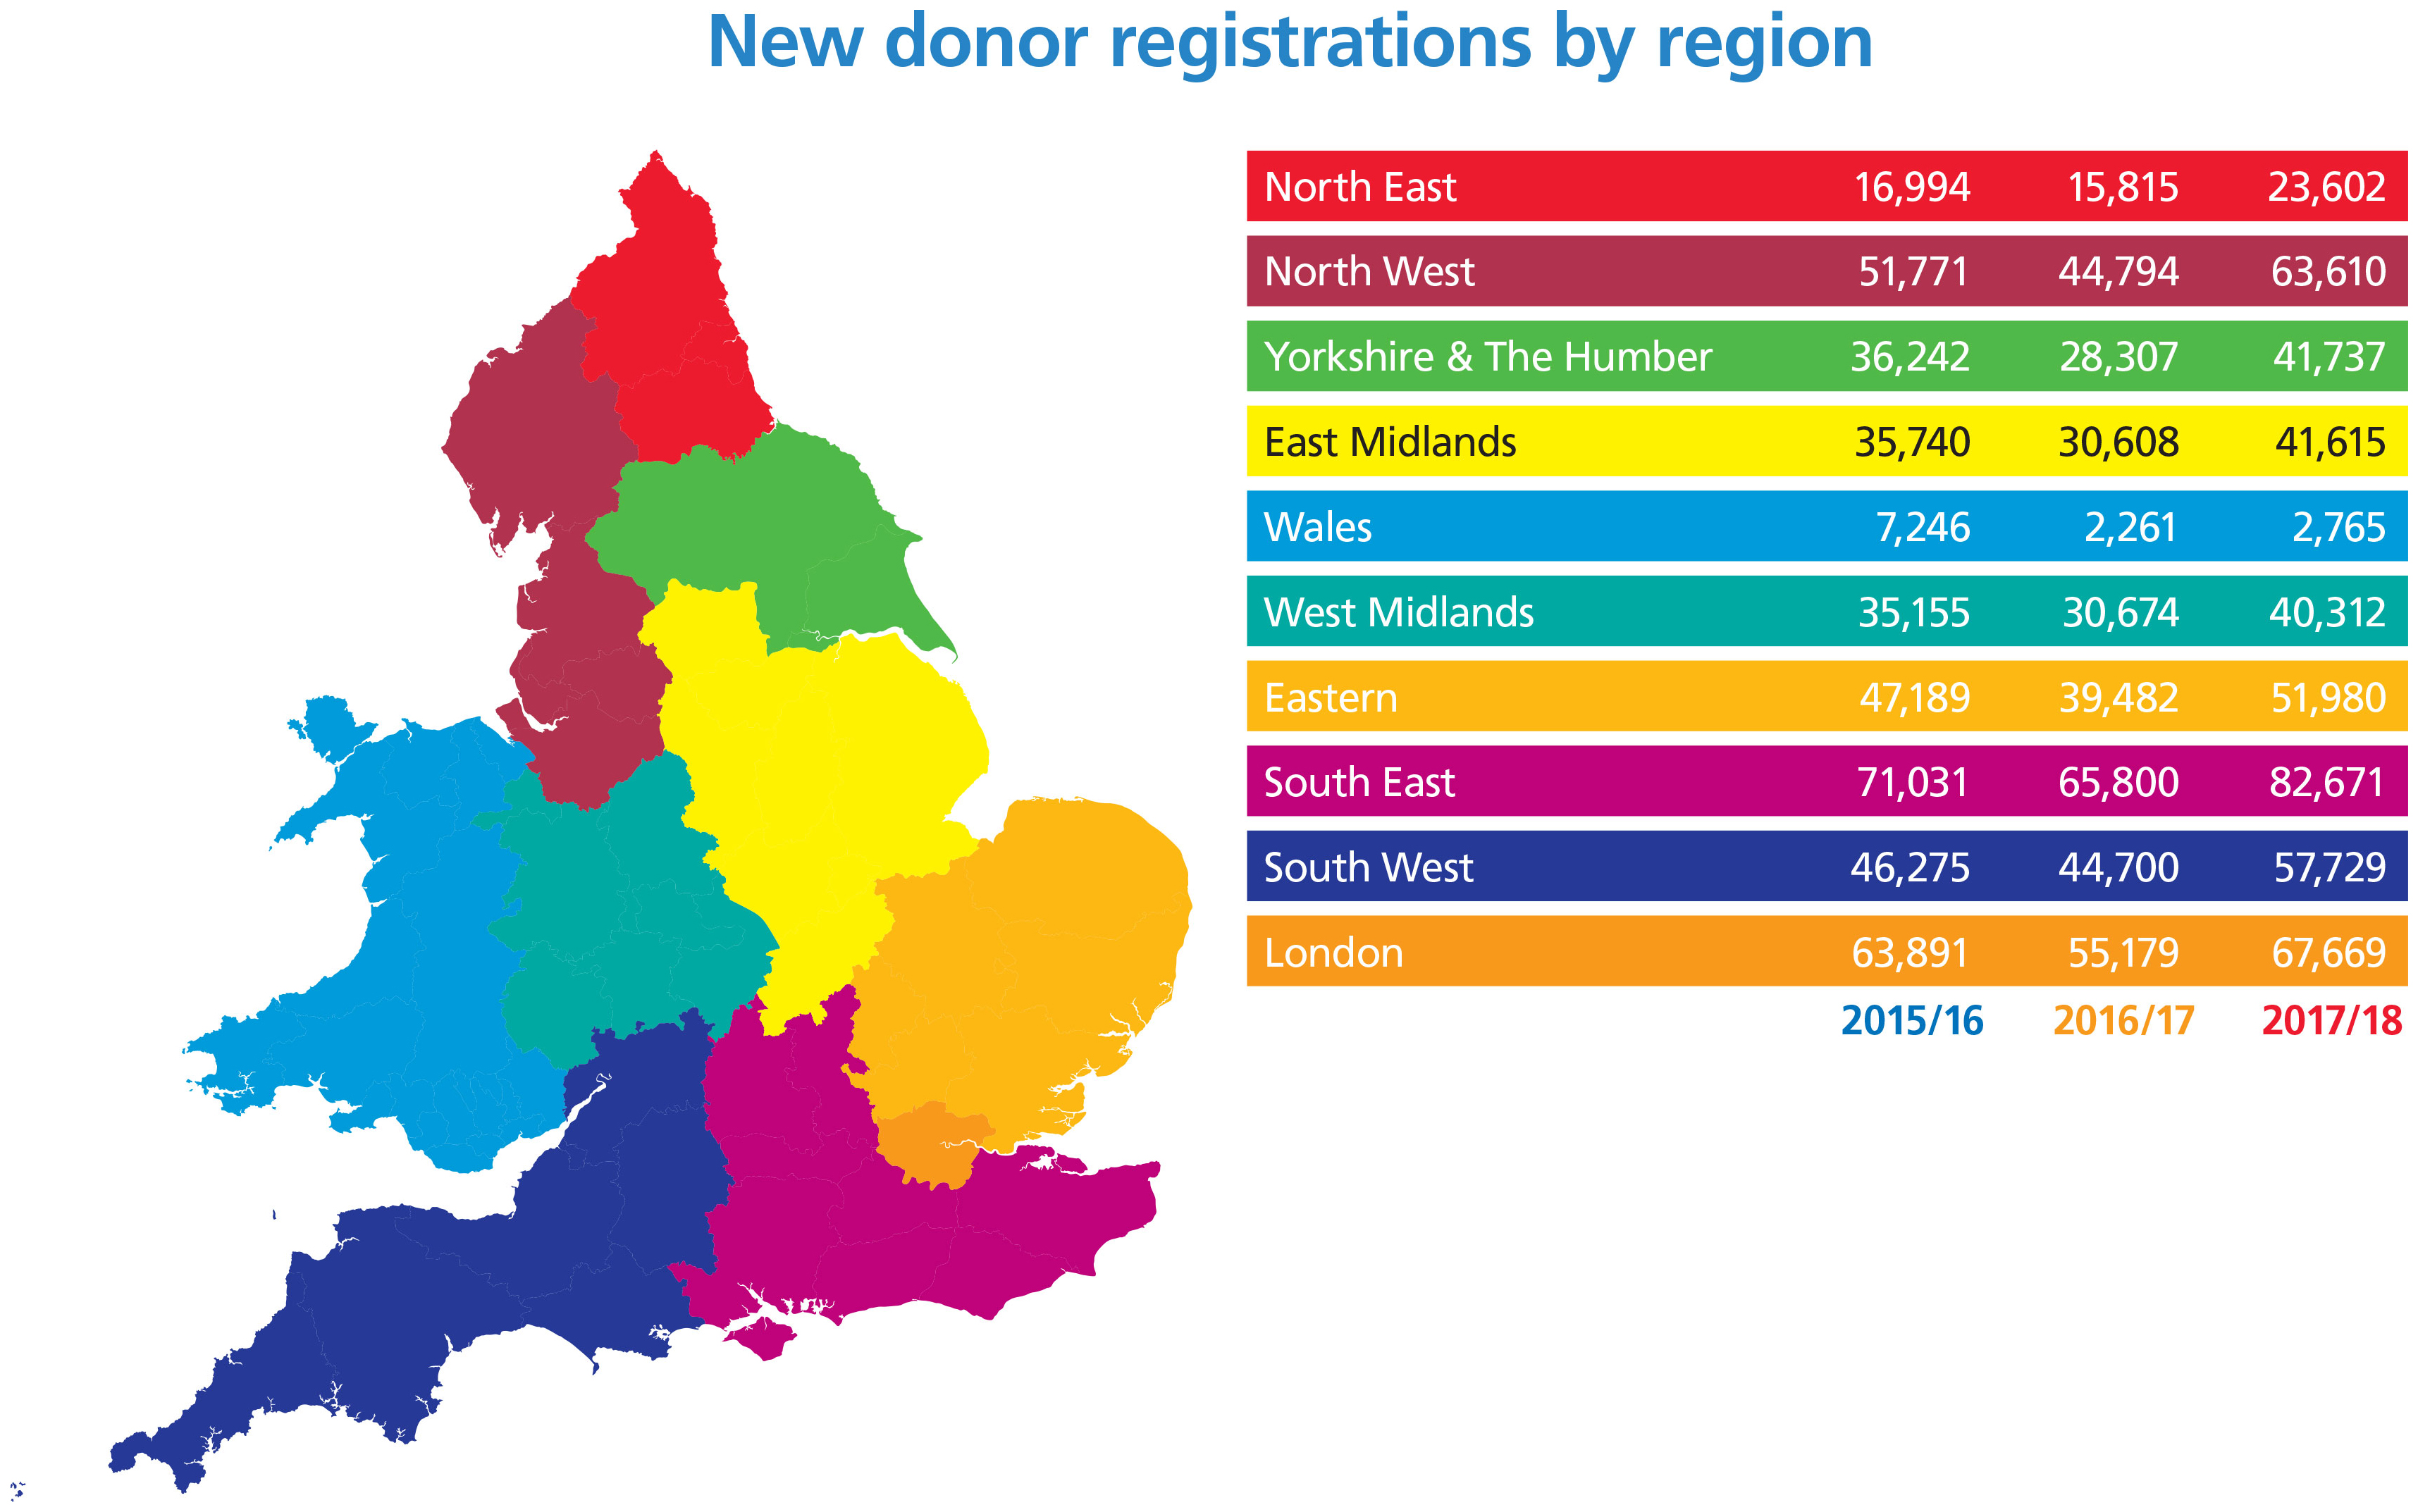 Map showing new blood donor registrations by region